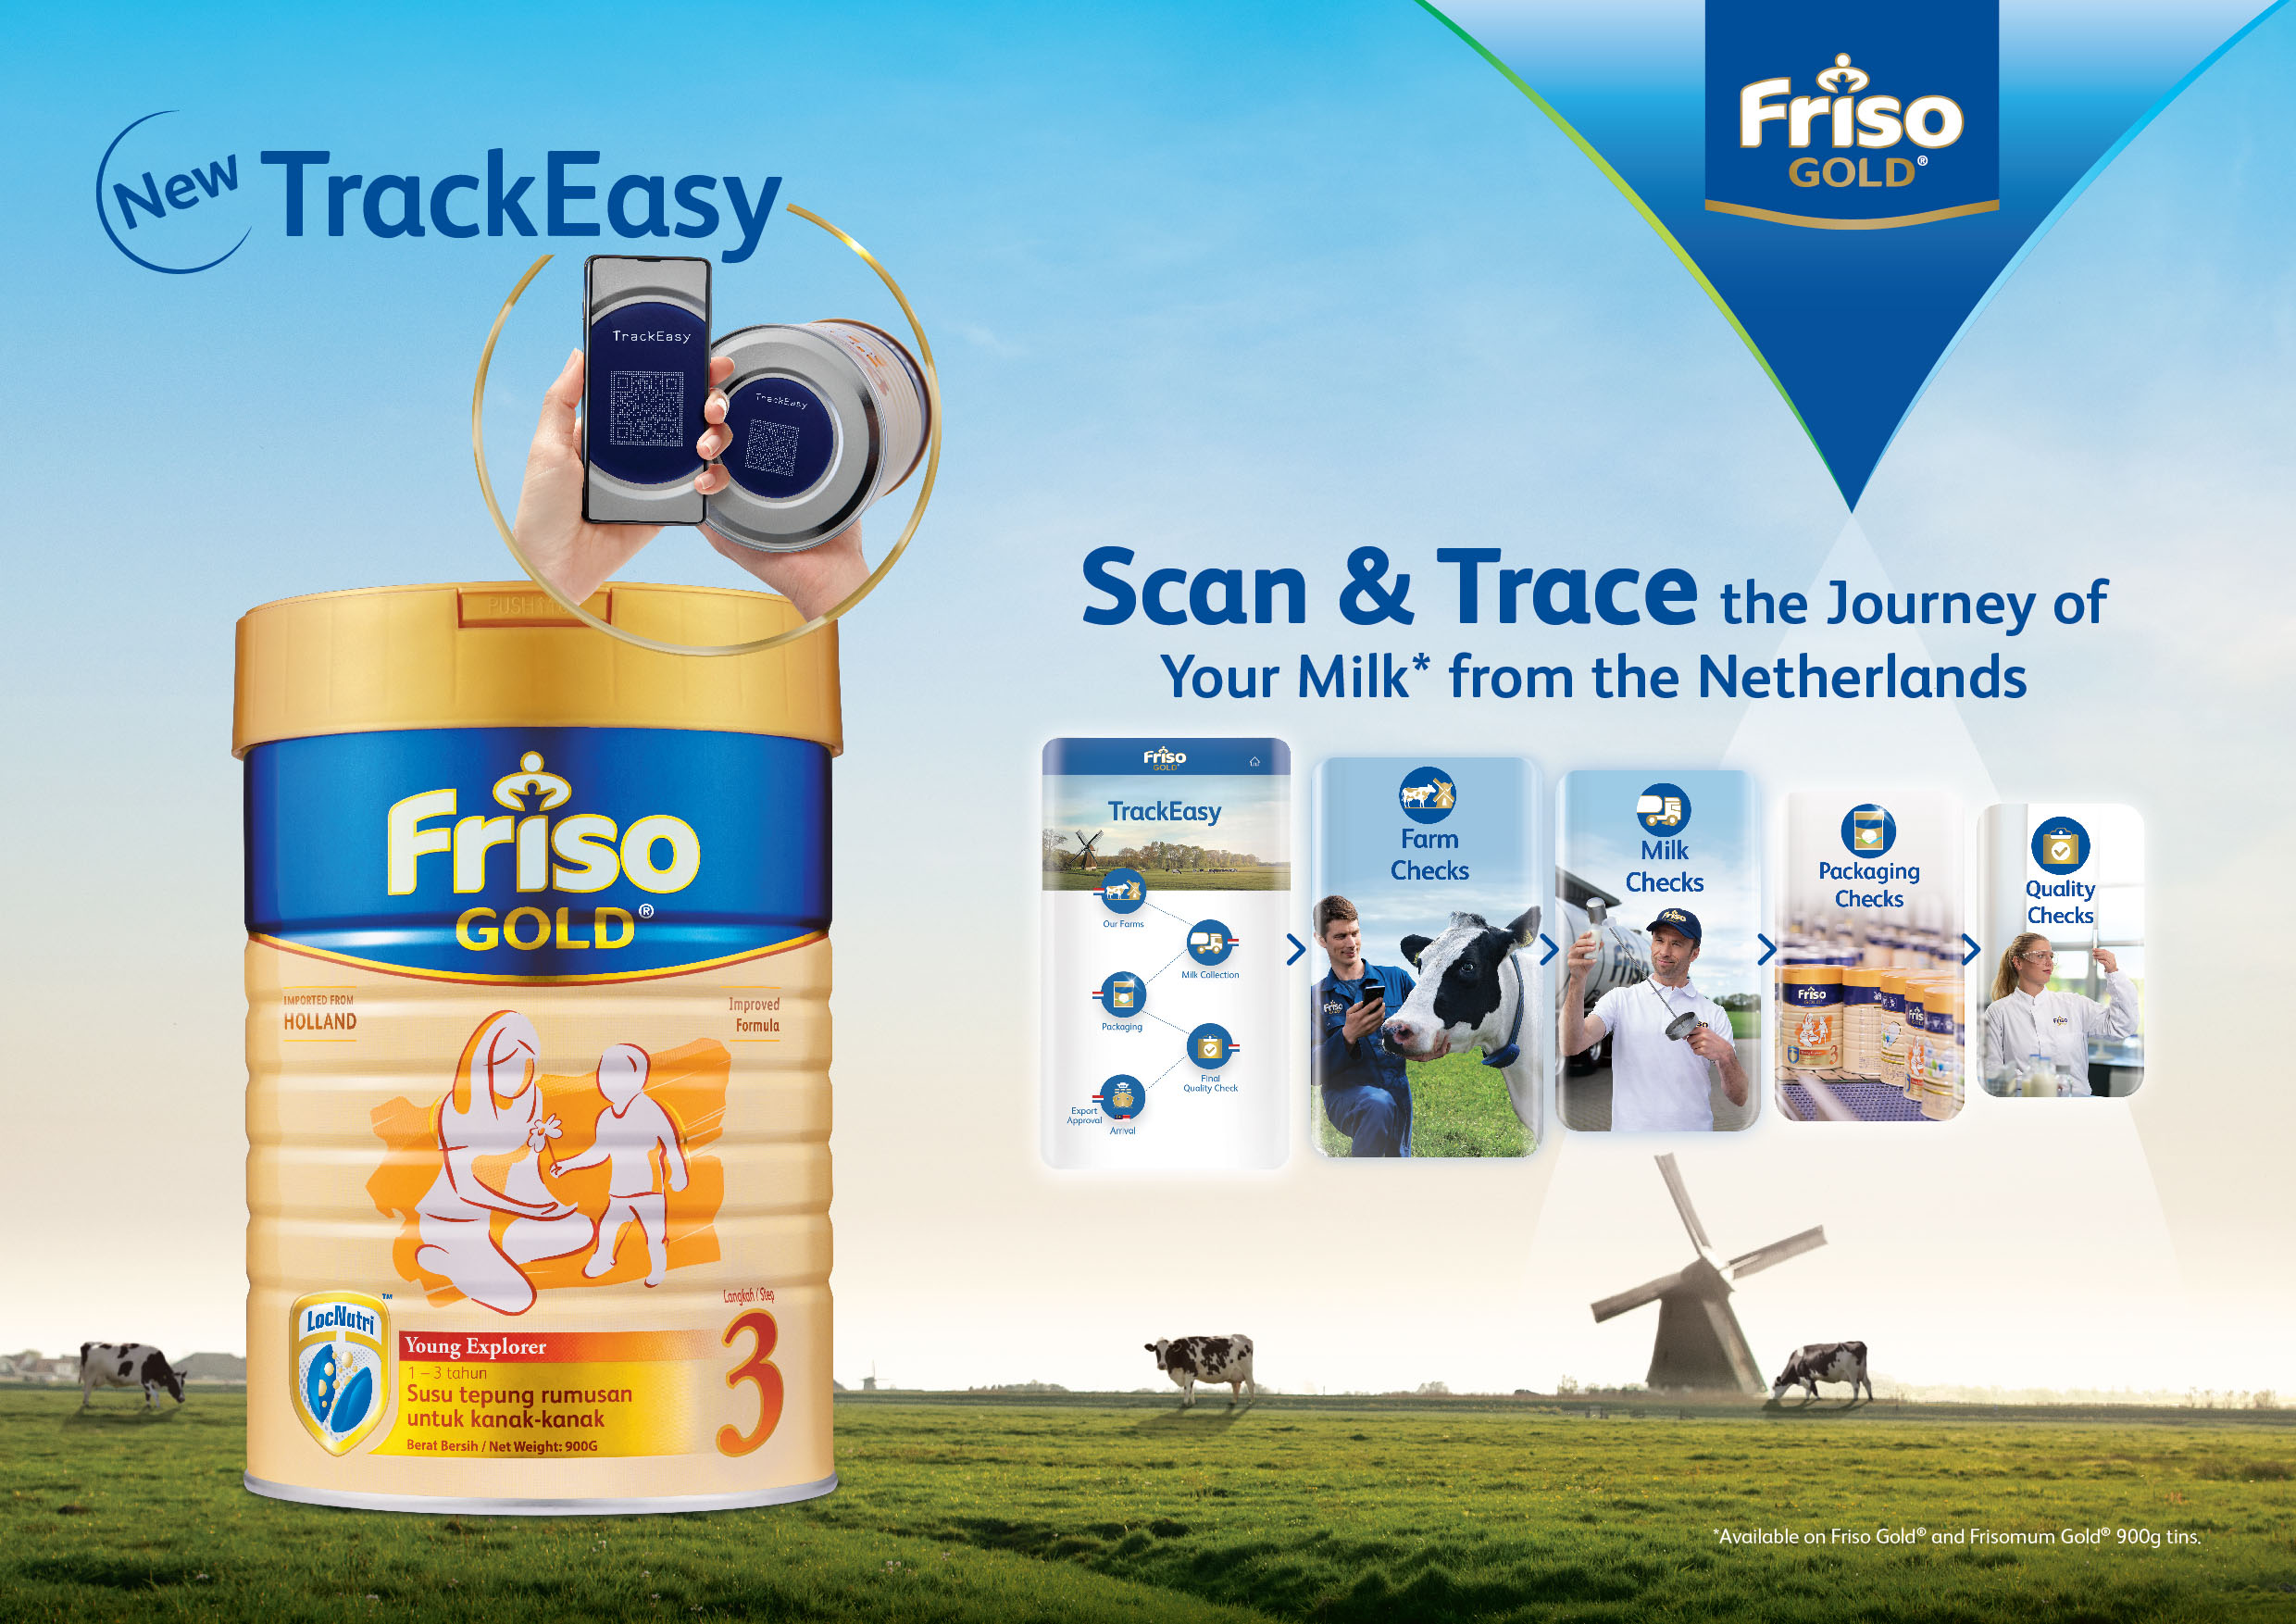 Image from Friso Gold